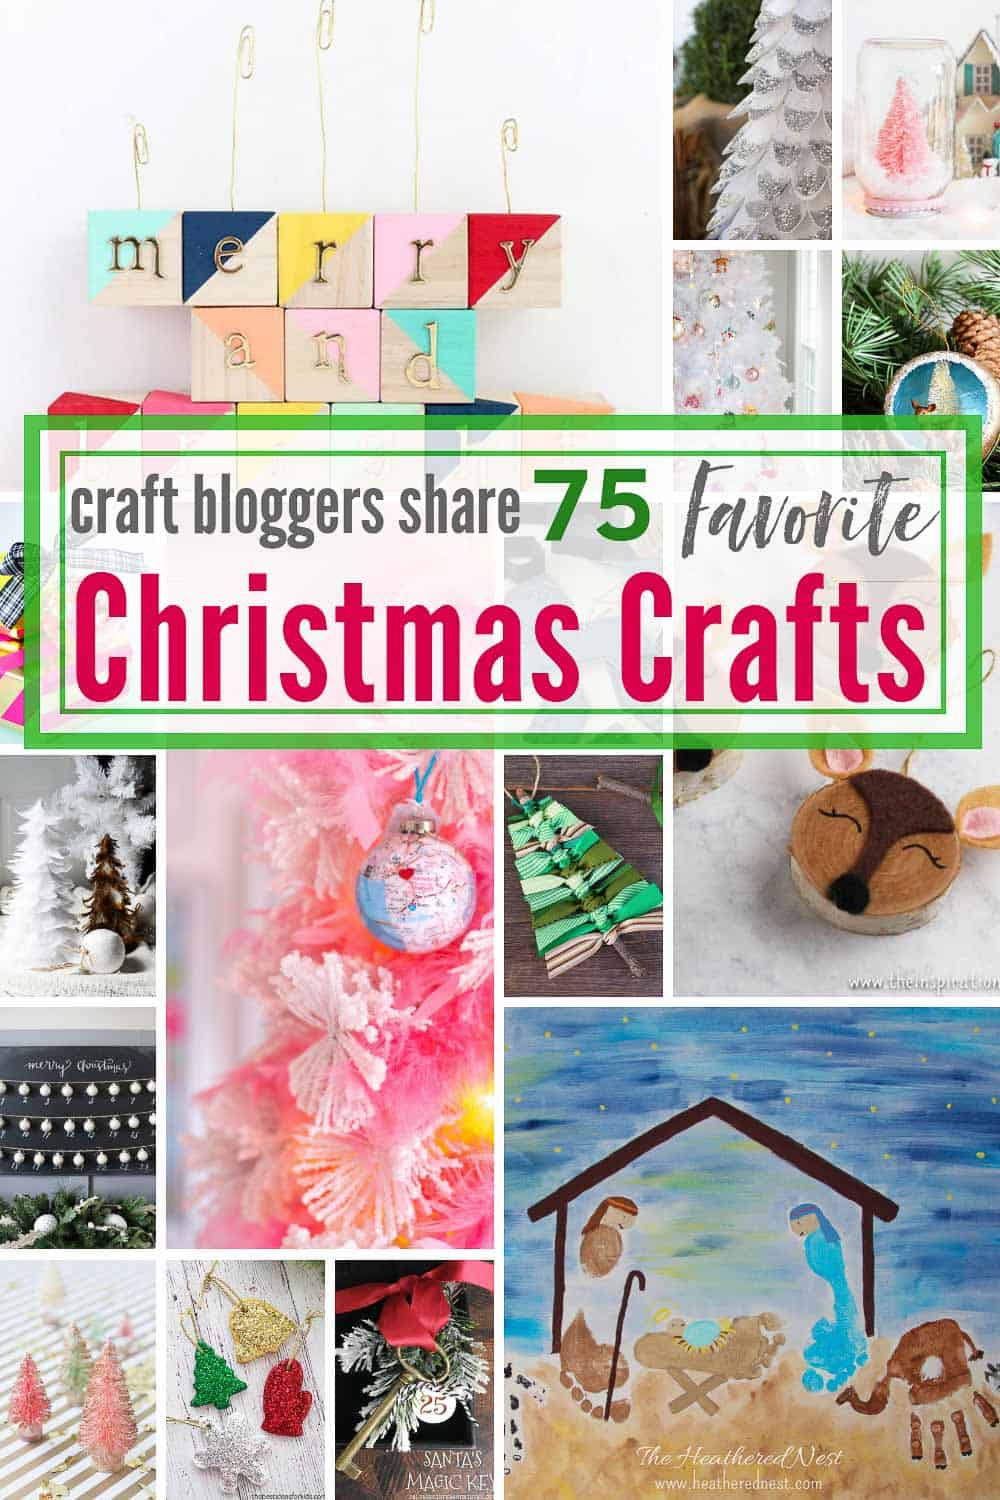 Talented Craft & Home Decorating bloggers shared their 75 FAVORITE easy Christmas Crafts, and here they are!! #easychristmascrafts #christmascraftideas #DIYchristmascrafts #DIYchristmasornaments #DIYchristmasdecor #christmasdecoratingideas #easychristmascraftstomake #easychristmascraftsforkids #easychristmascraftsforgifts